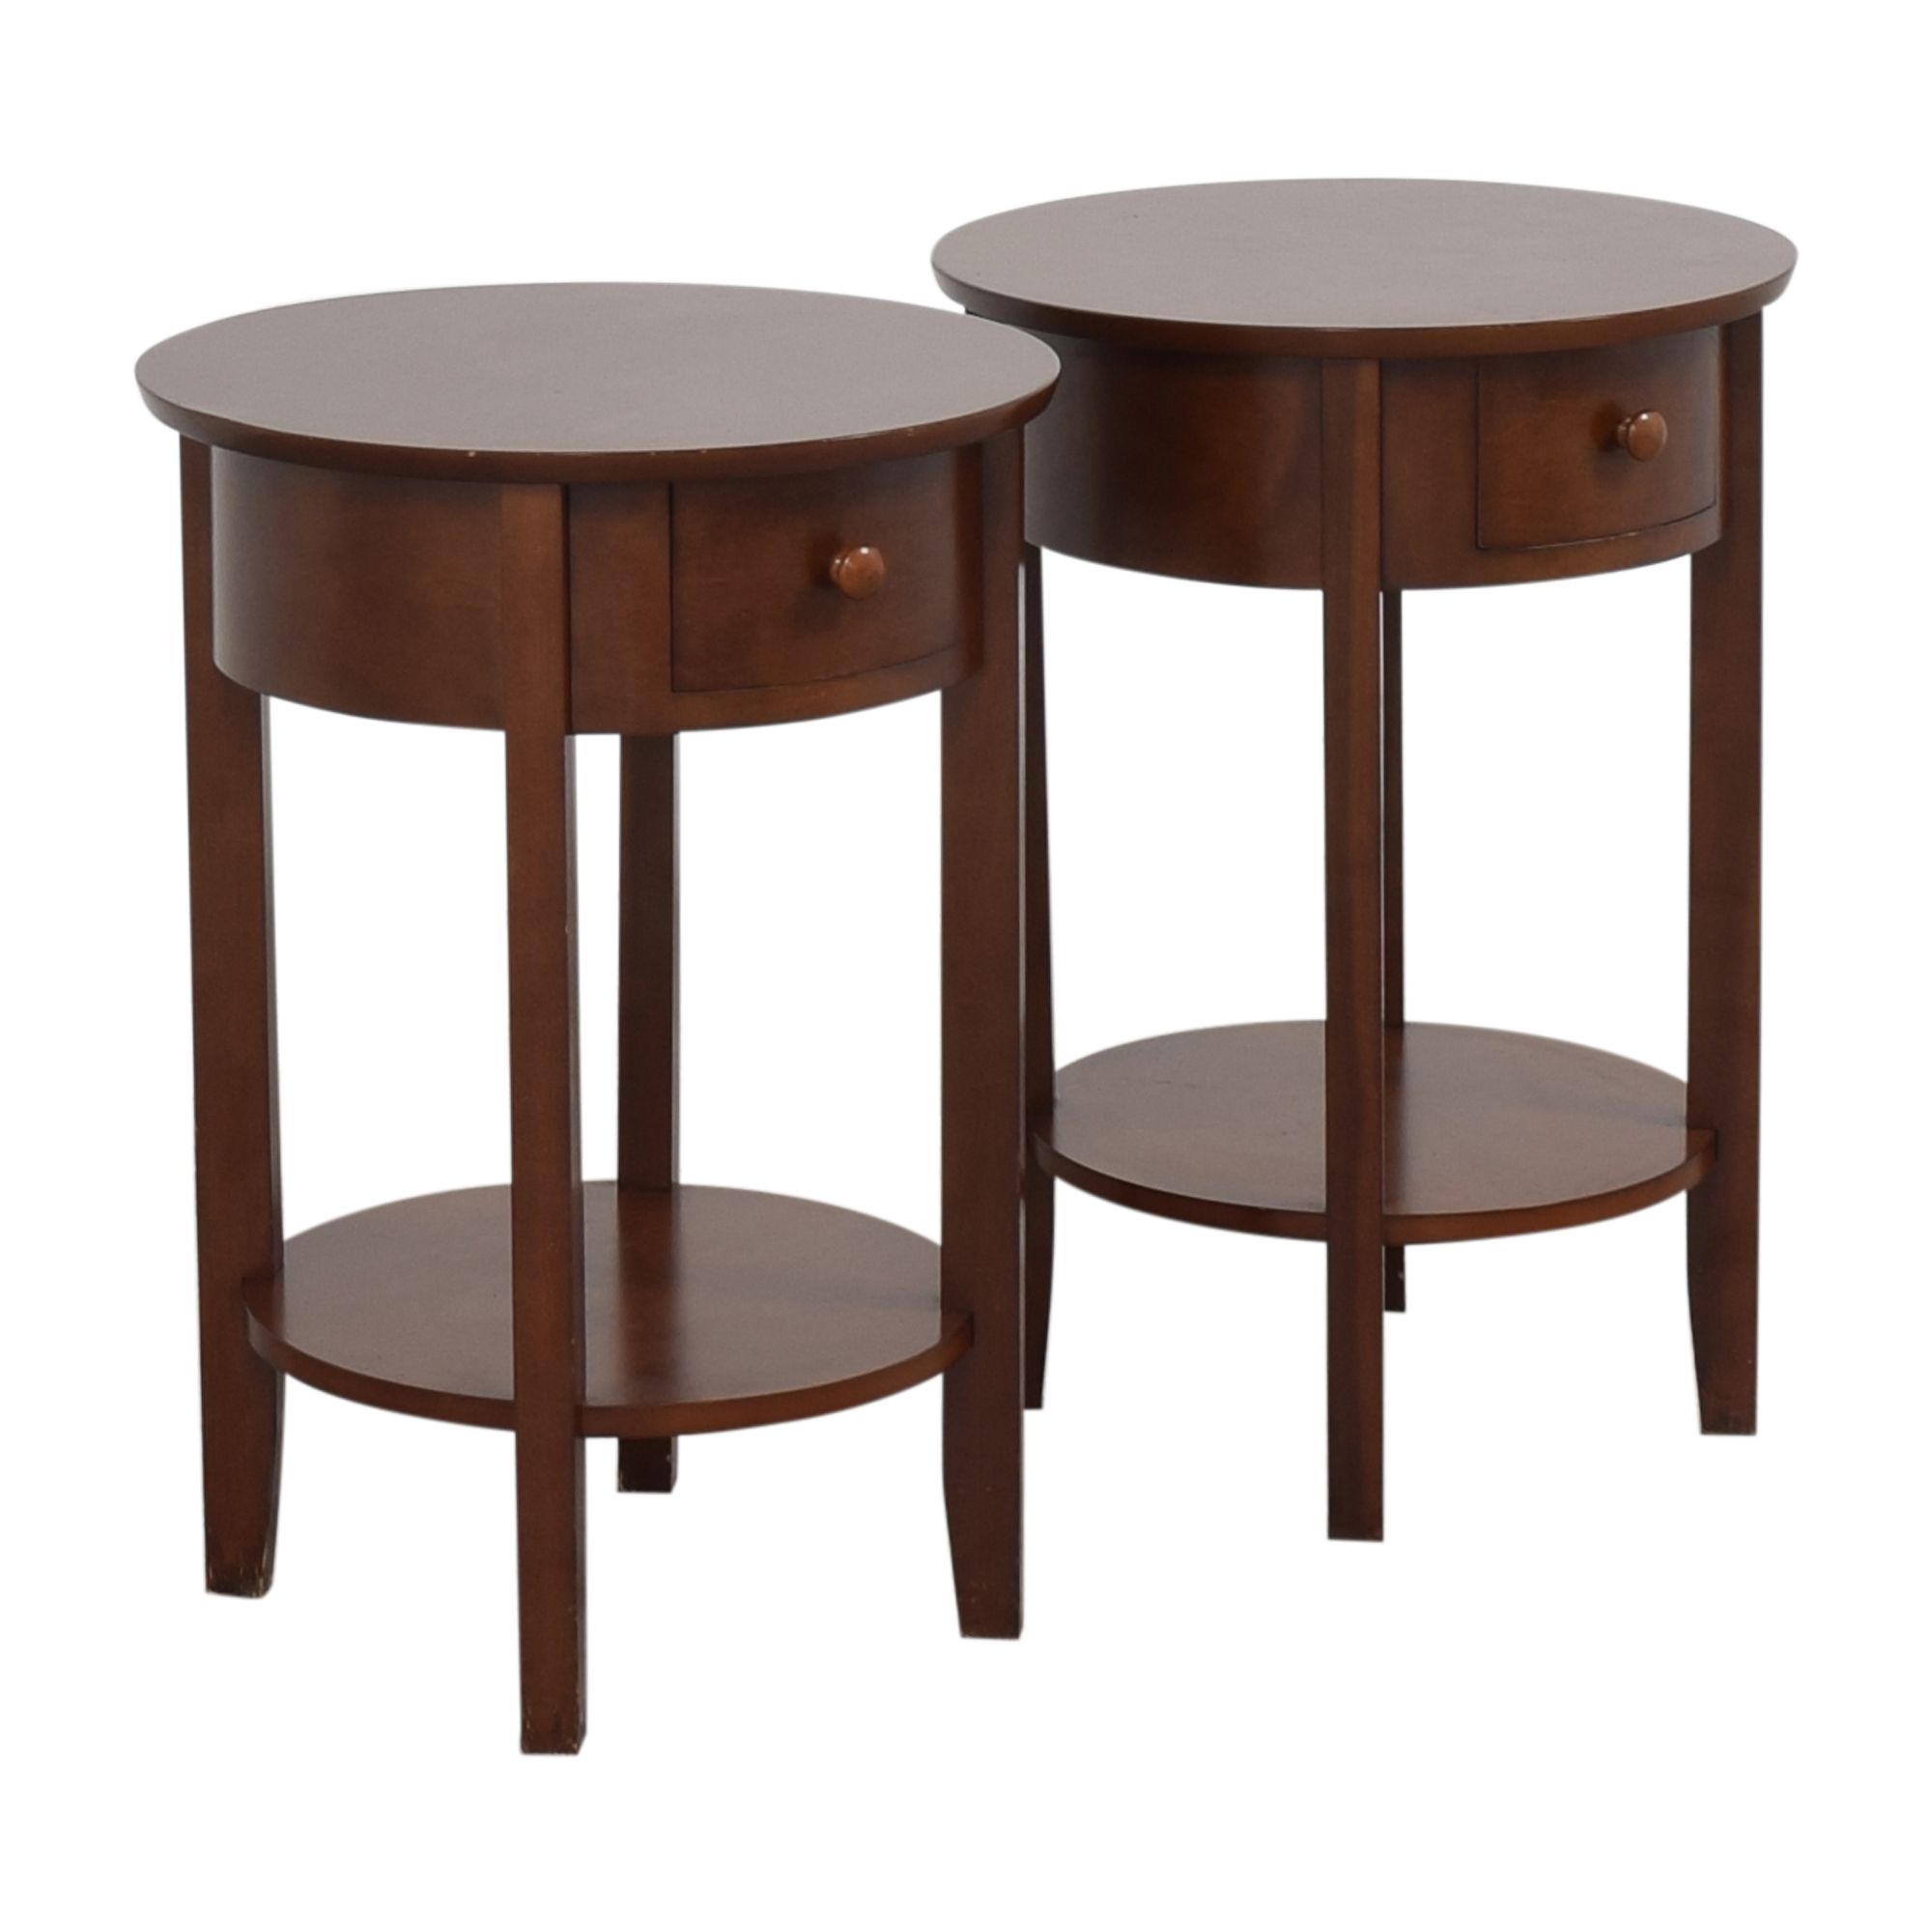 Pottery Barn Pottery Barn Round Top End Tables pa